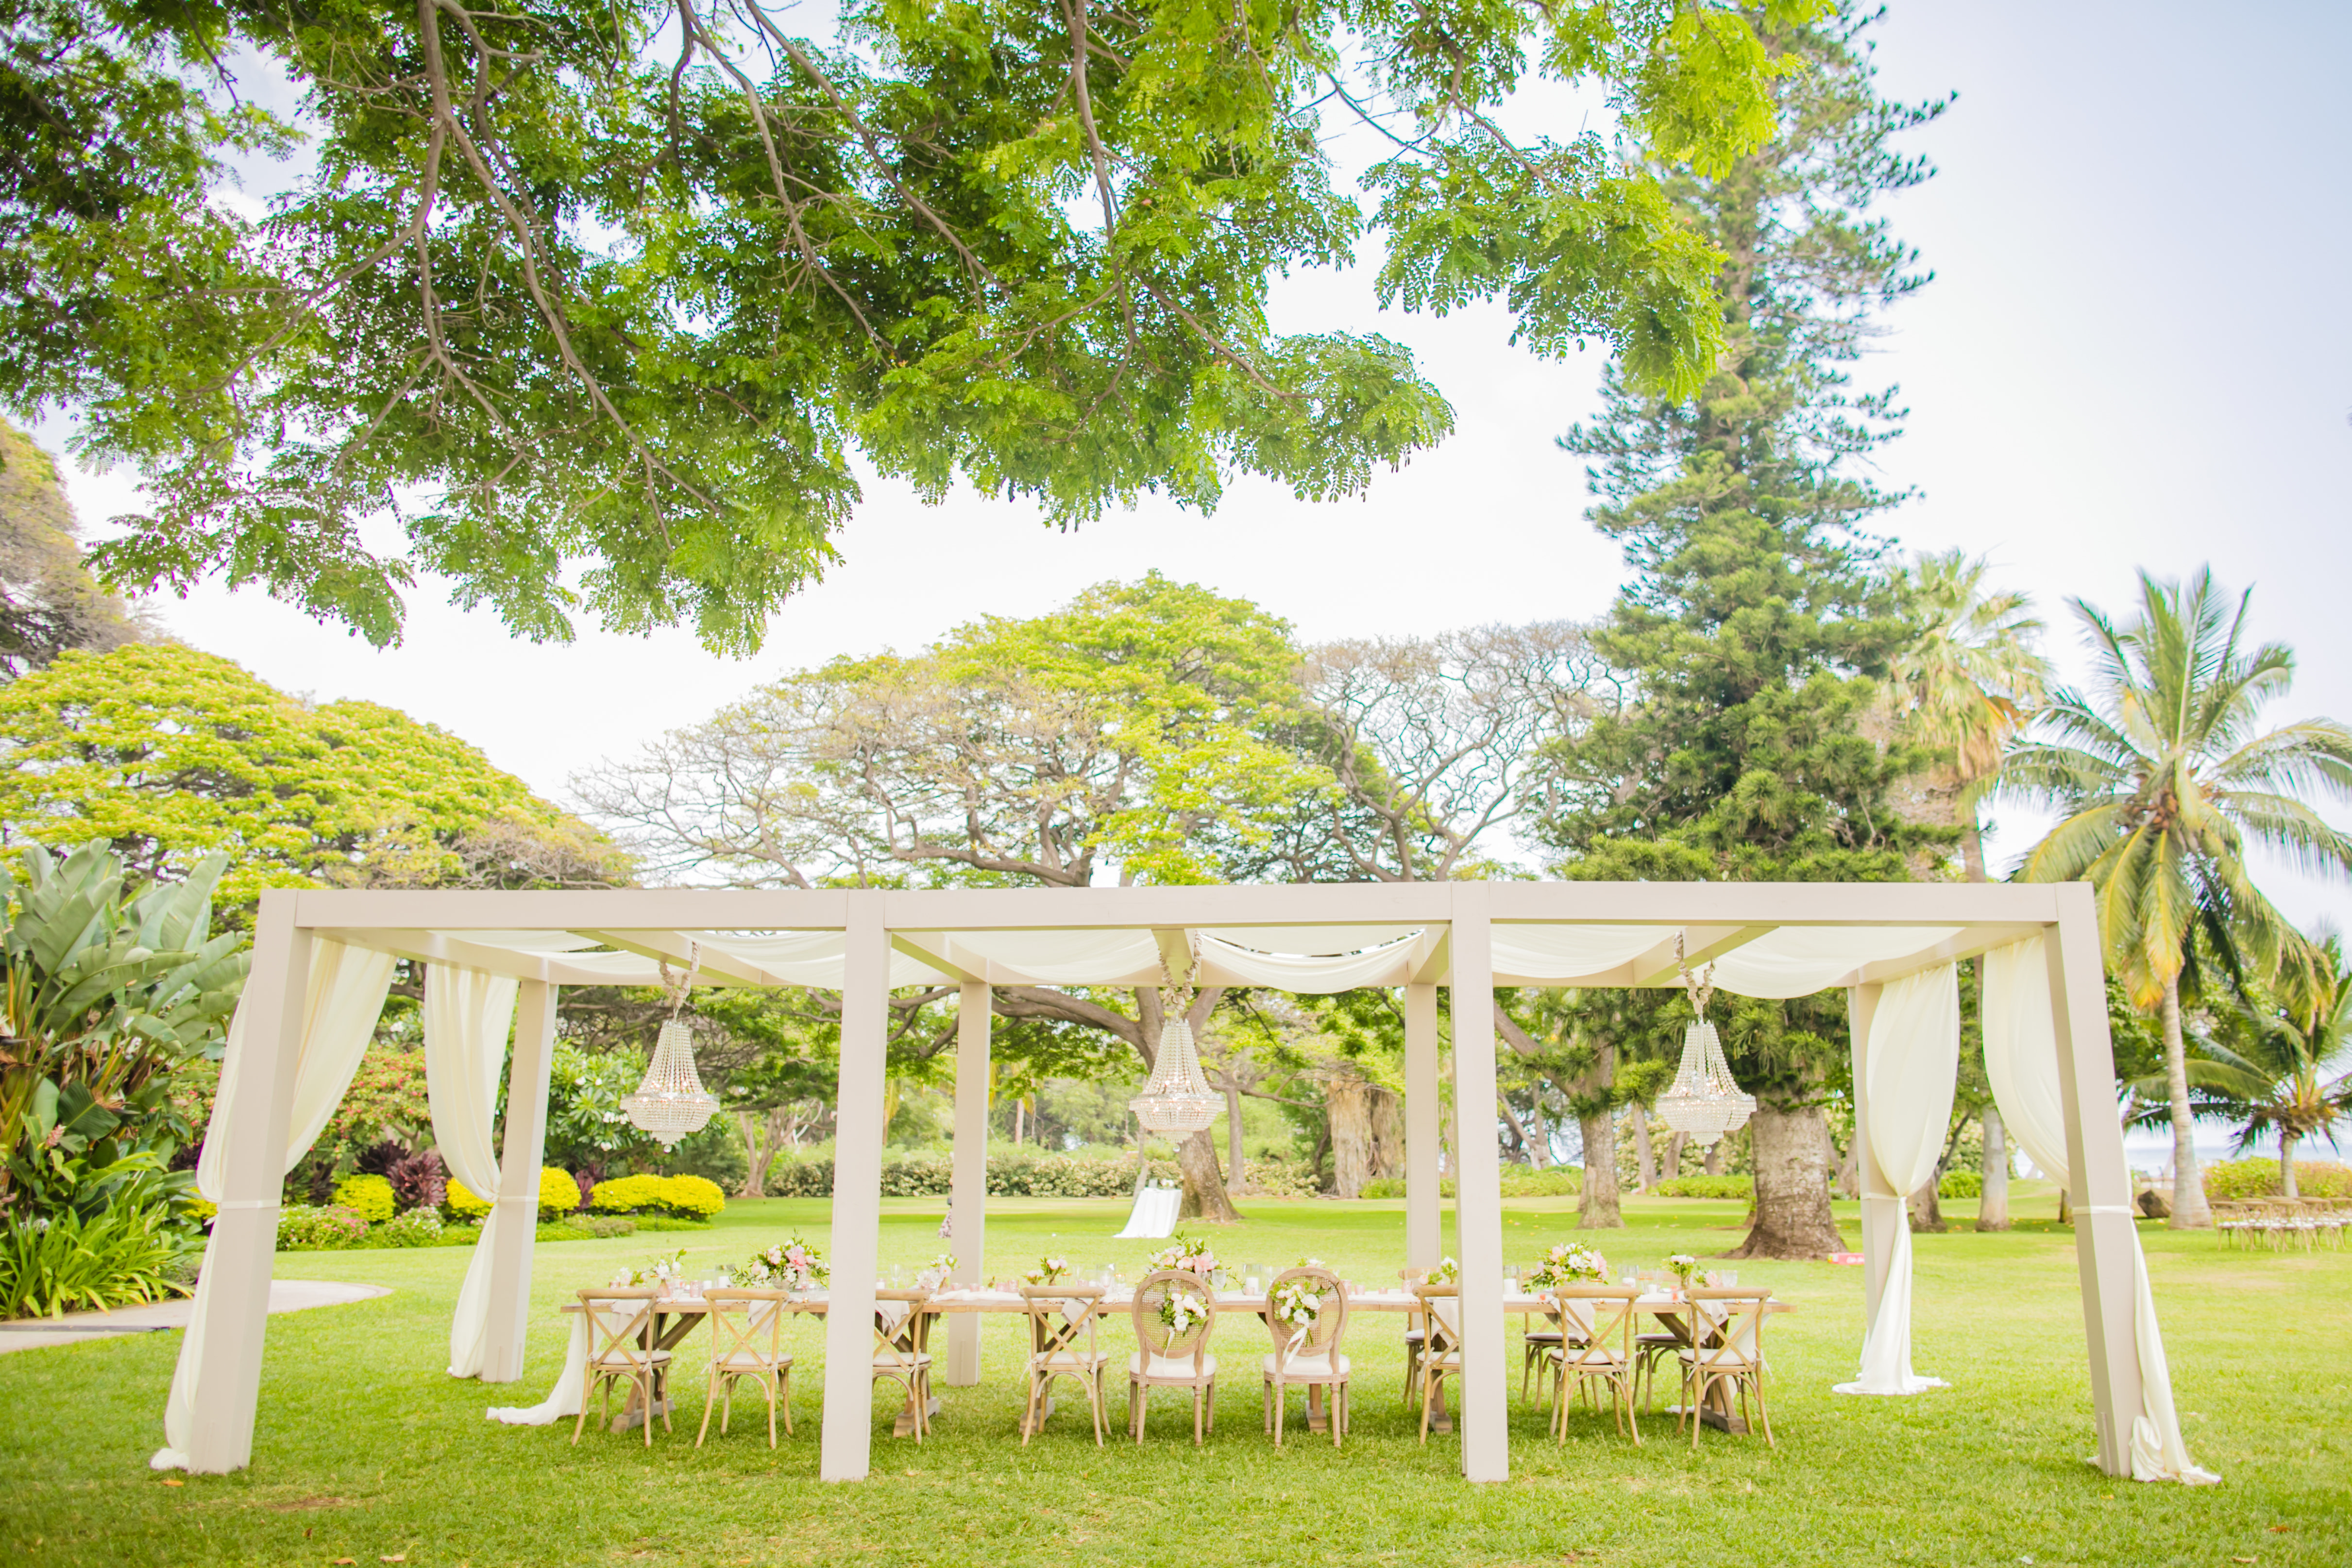 Maui Wedding Reception | Destination Wedding in Maui | Maui Wedding Planner | Maui's Angels blog